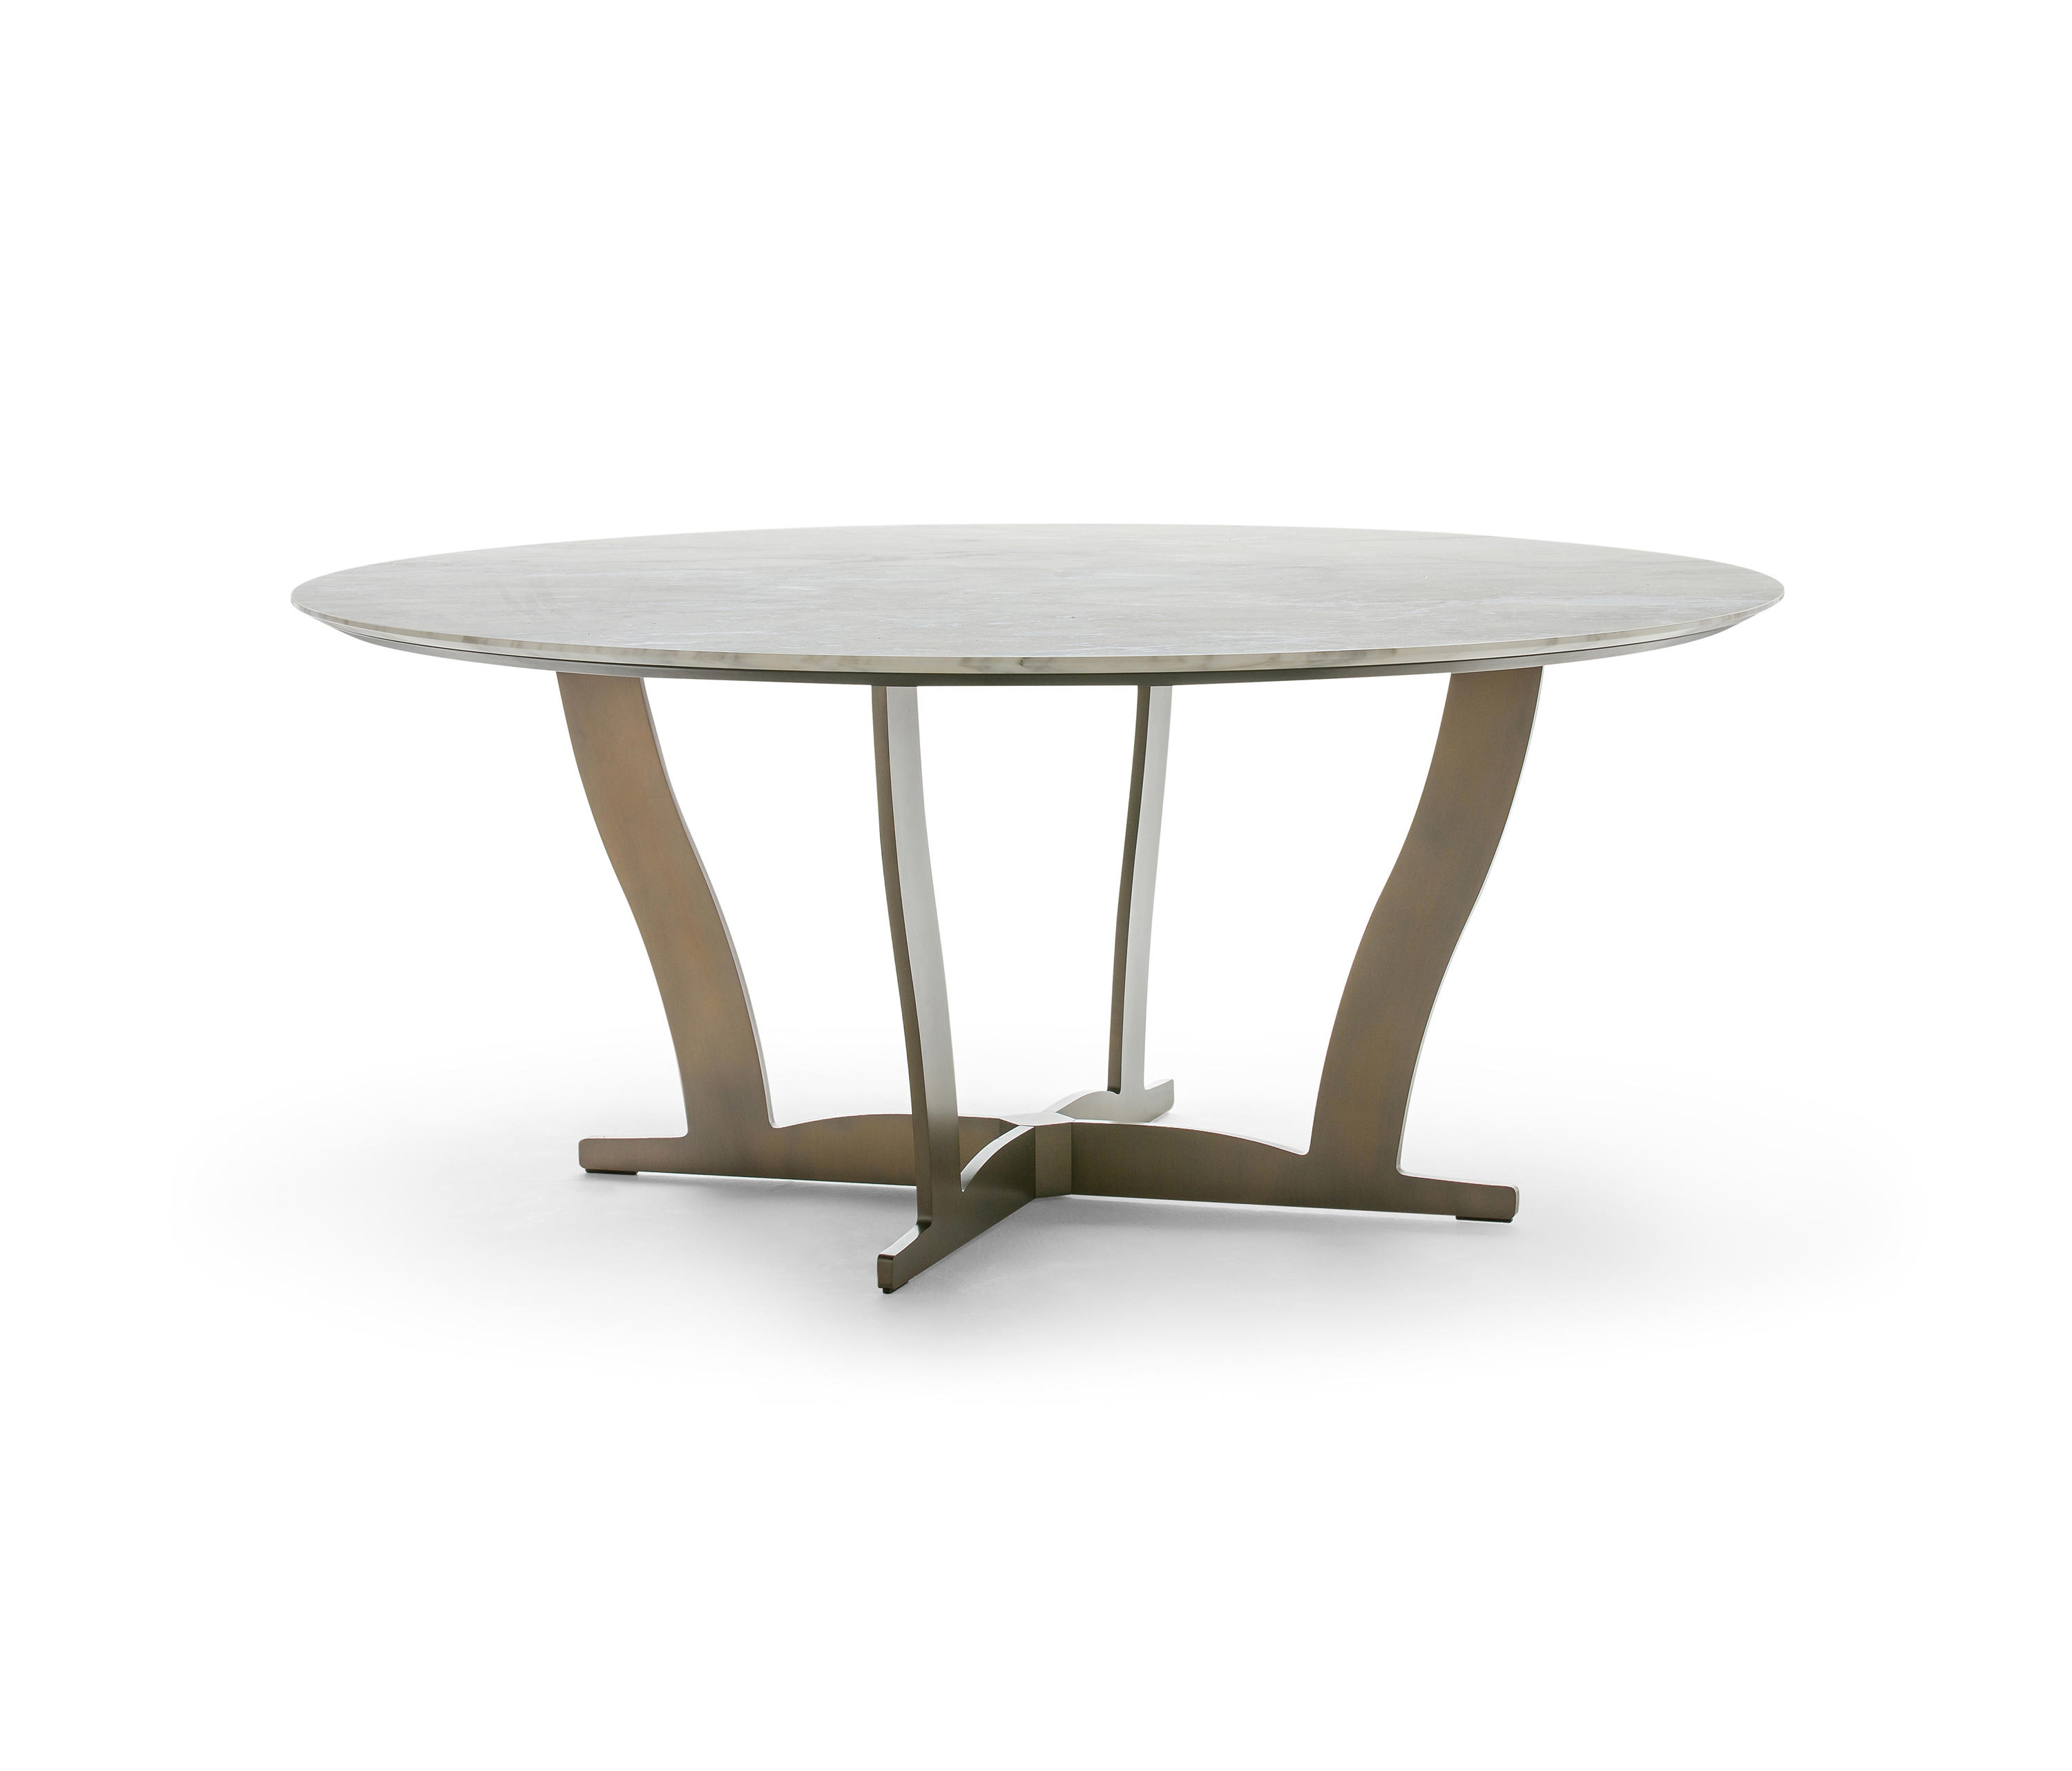 Bogart Table Dining Tables From Alberta Pacific Furniture  # Muebles Tadel Grup